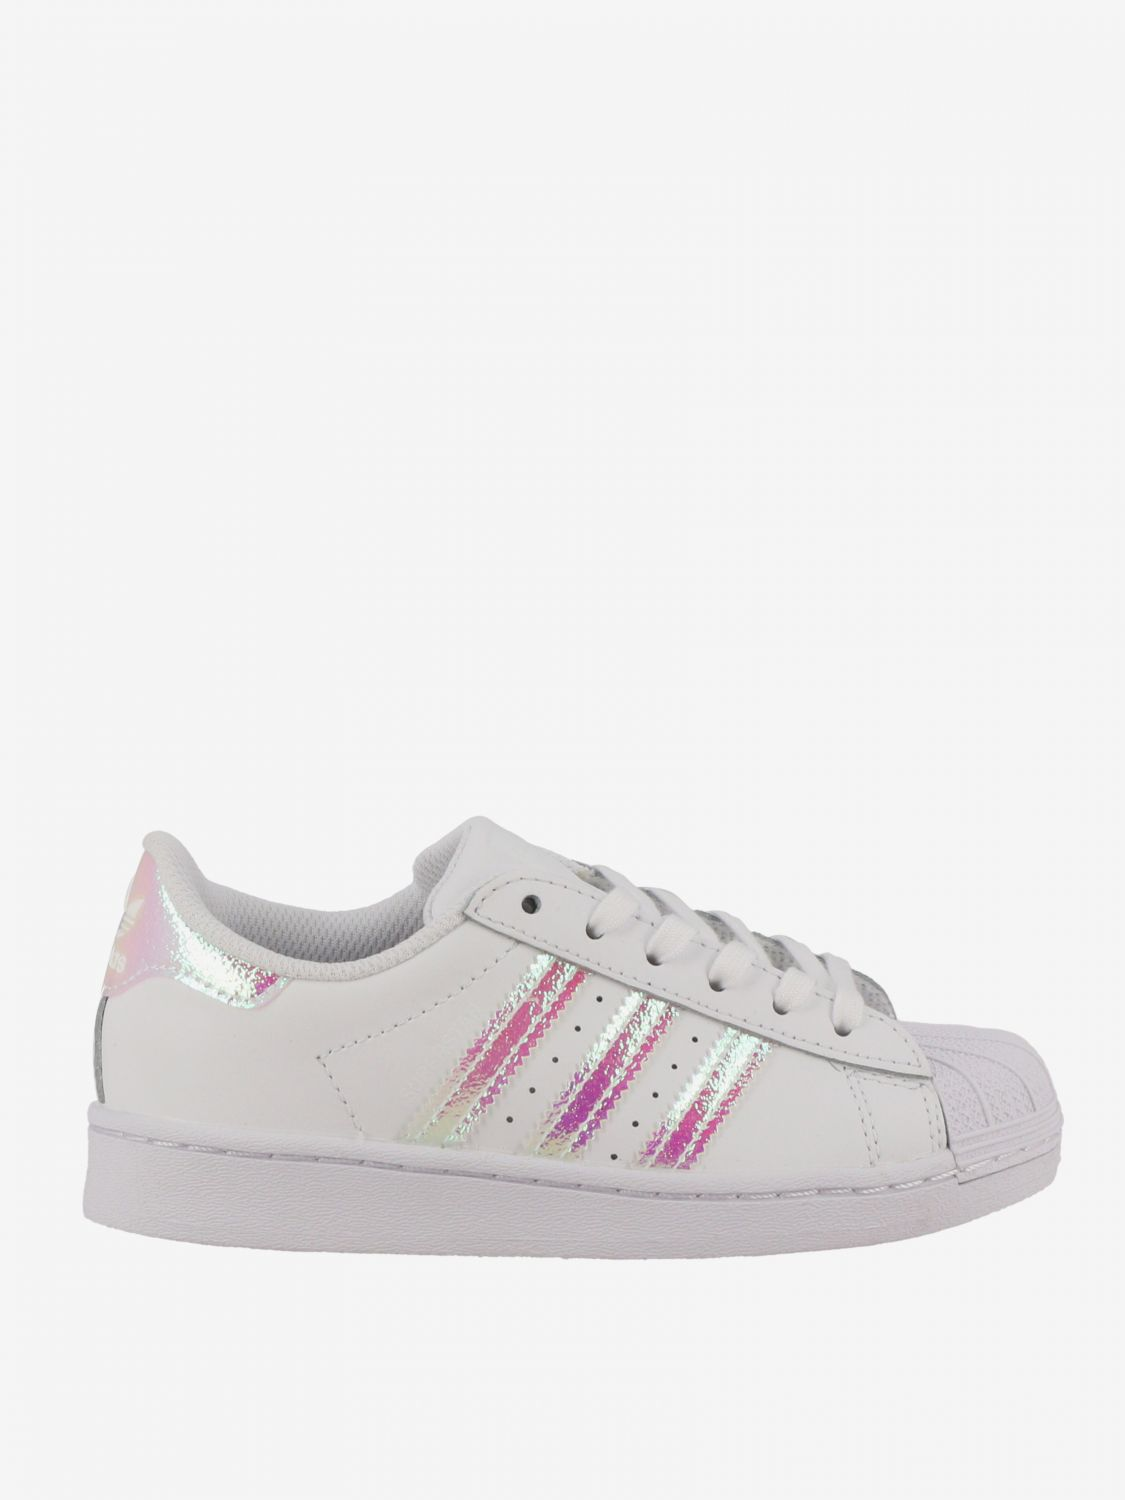 鞋履 Adidas Originals: Adidas Originals Superstar logo真皮运动鞋 白色 1